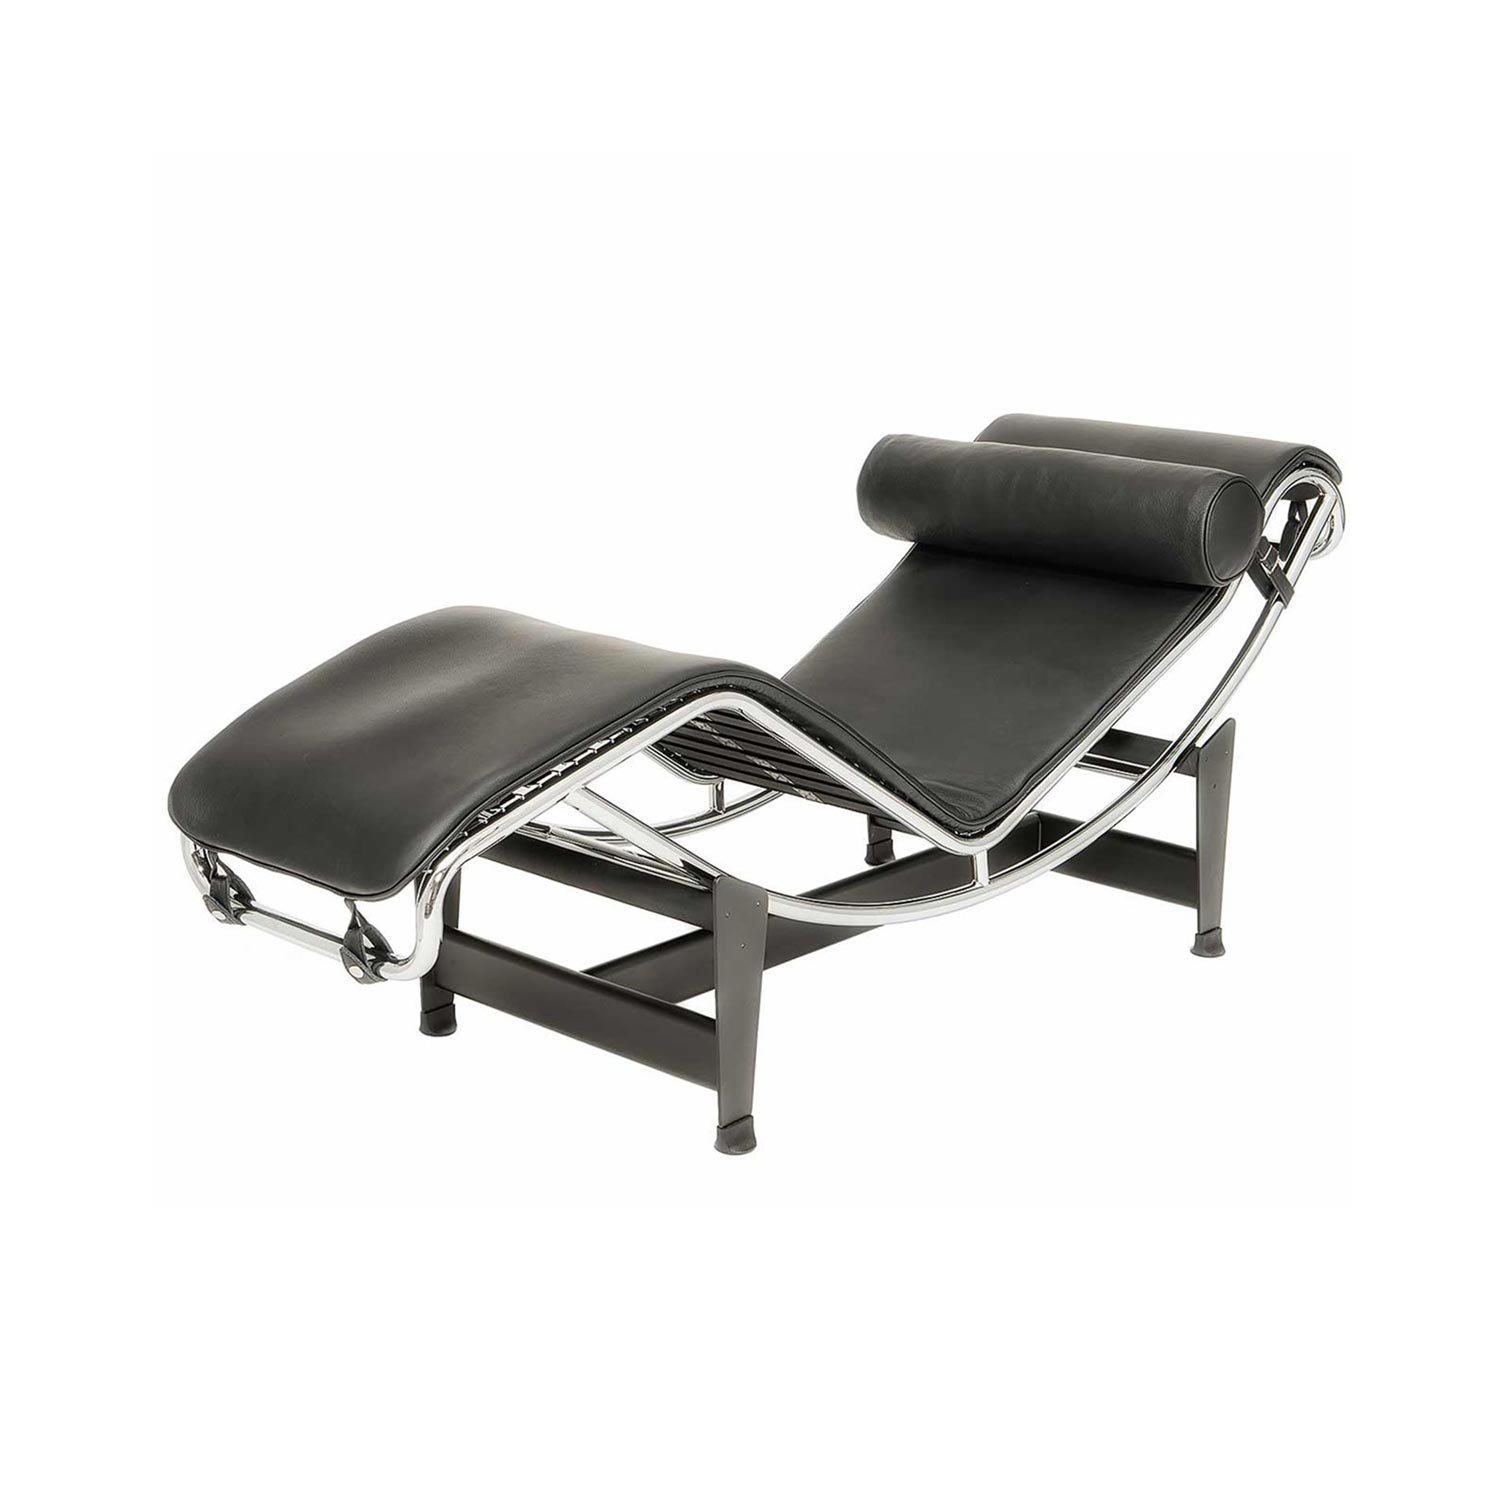 Lc 44 chaiselongue steelform the best reproductions of for Chaise longue le corbusier vache